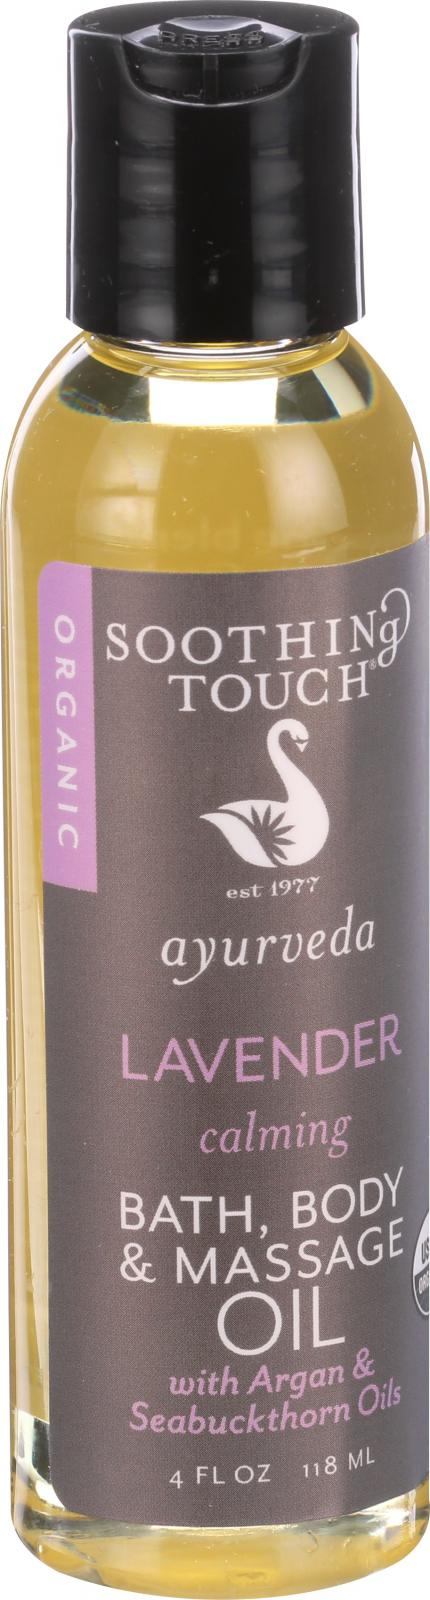 Soothing Touch Bath Body and Massage Oil - Organic - Ayurveda - Lavender - Calming - 4 oz